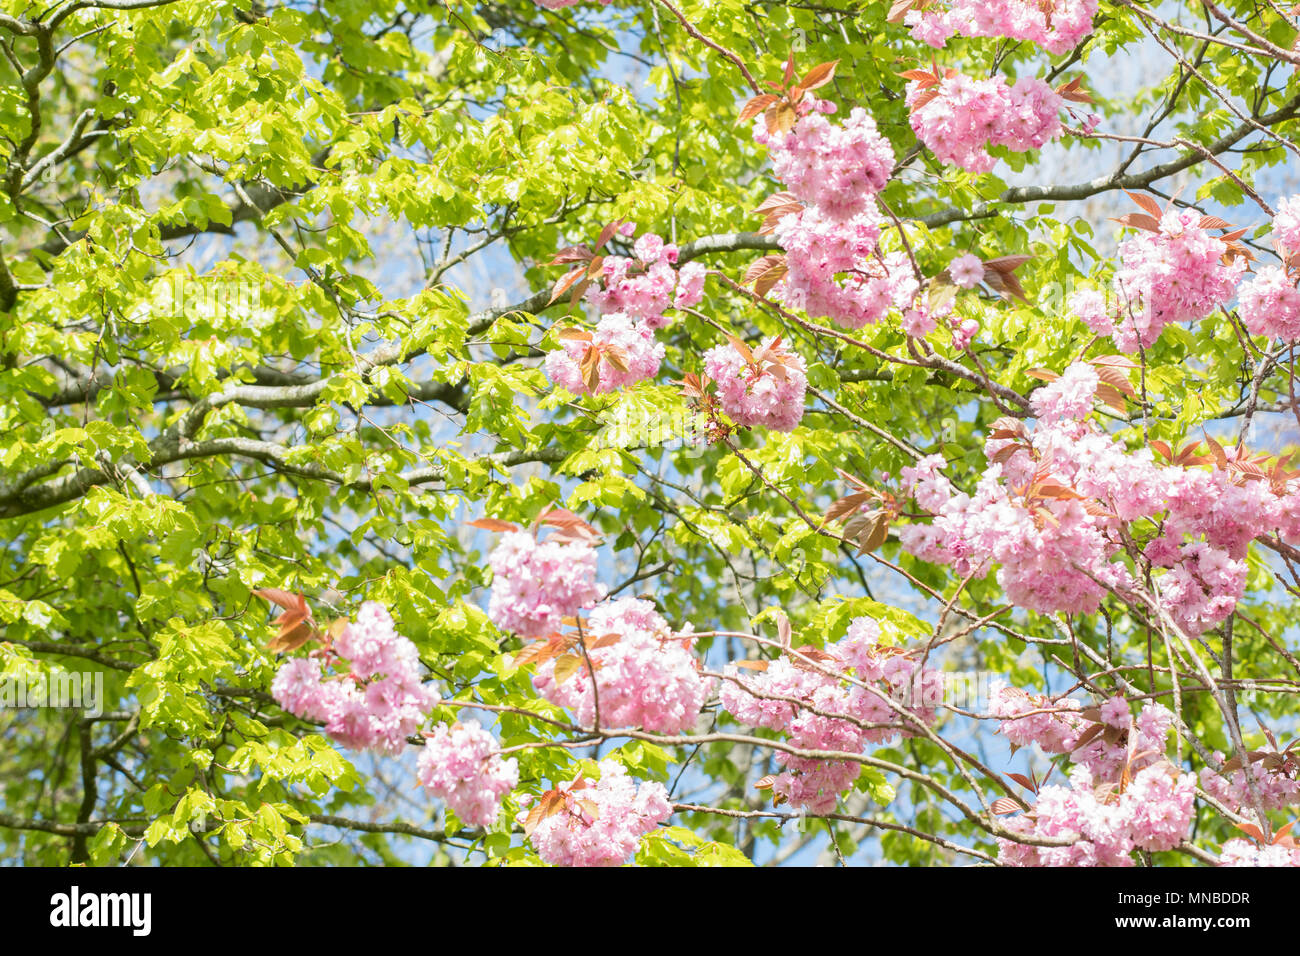 Spring leaves and blossom - uk - Stock Image